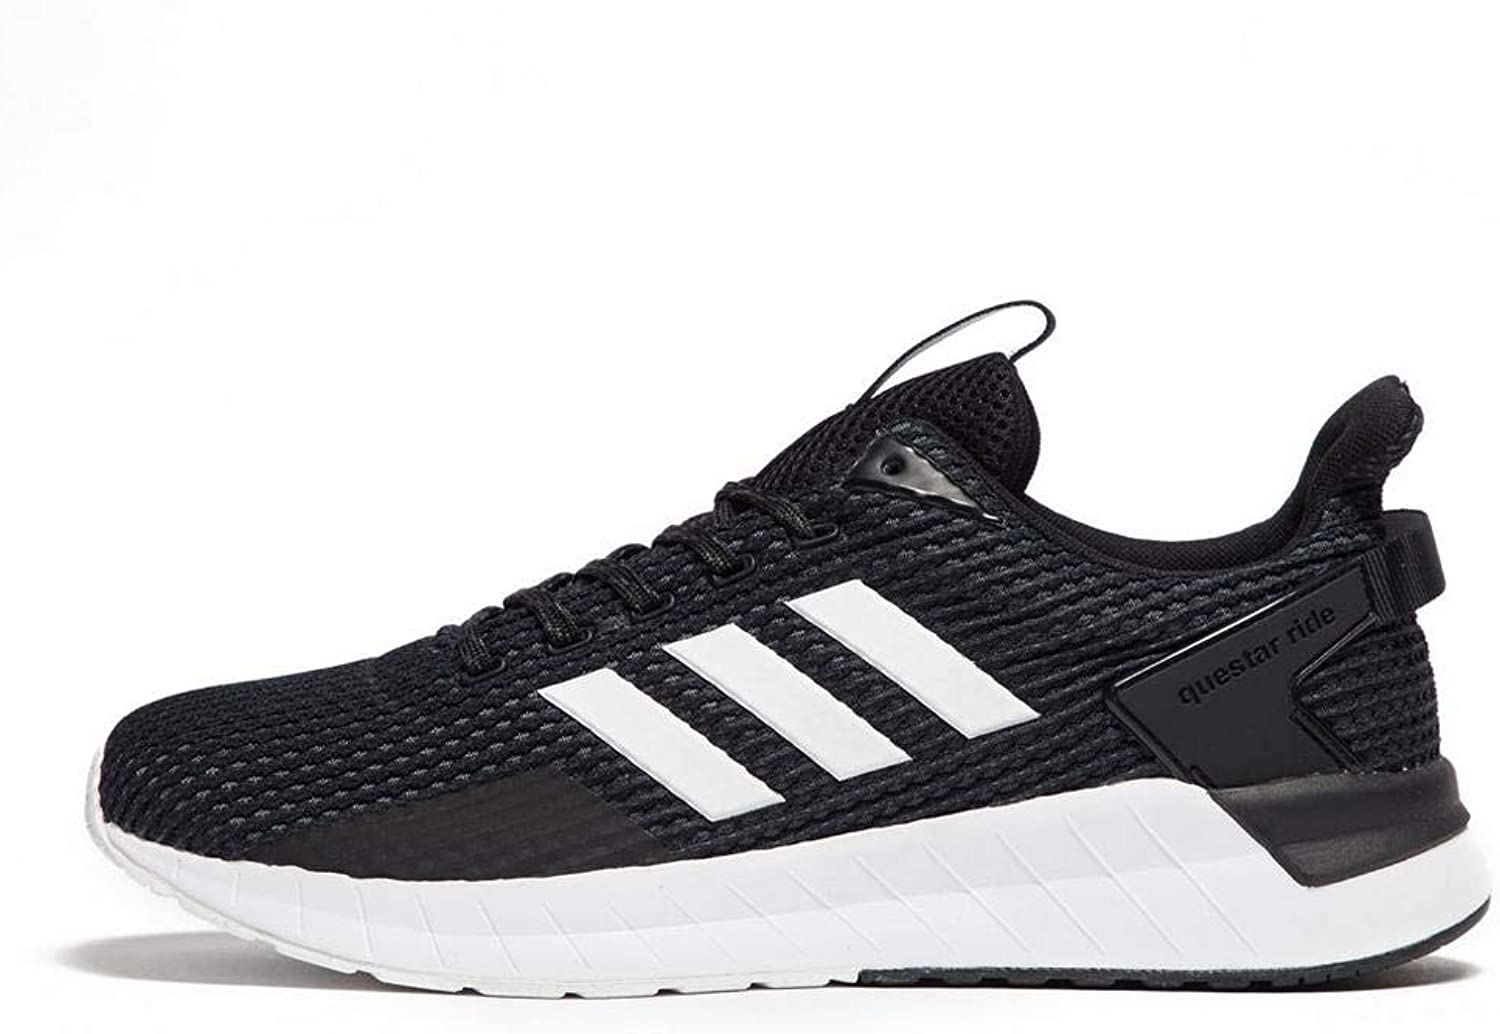 Adidas Questar Ride Mena s Running shoes